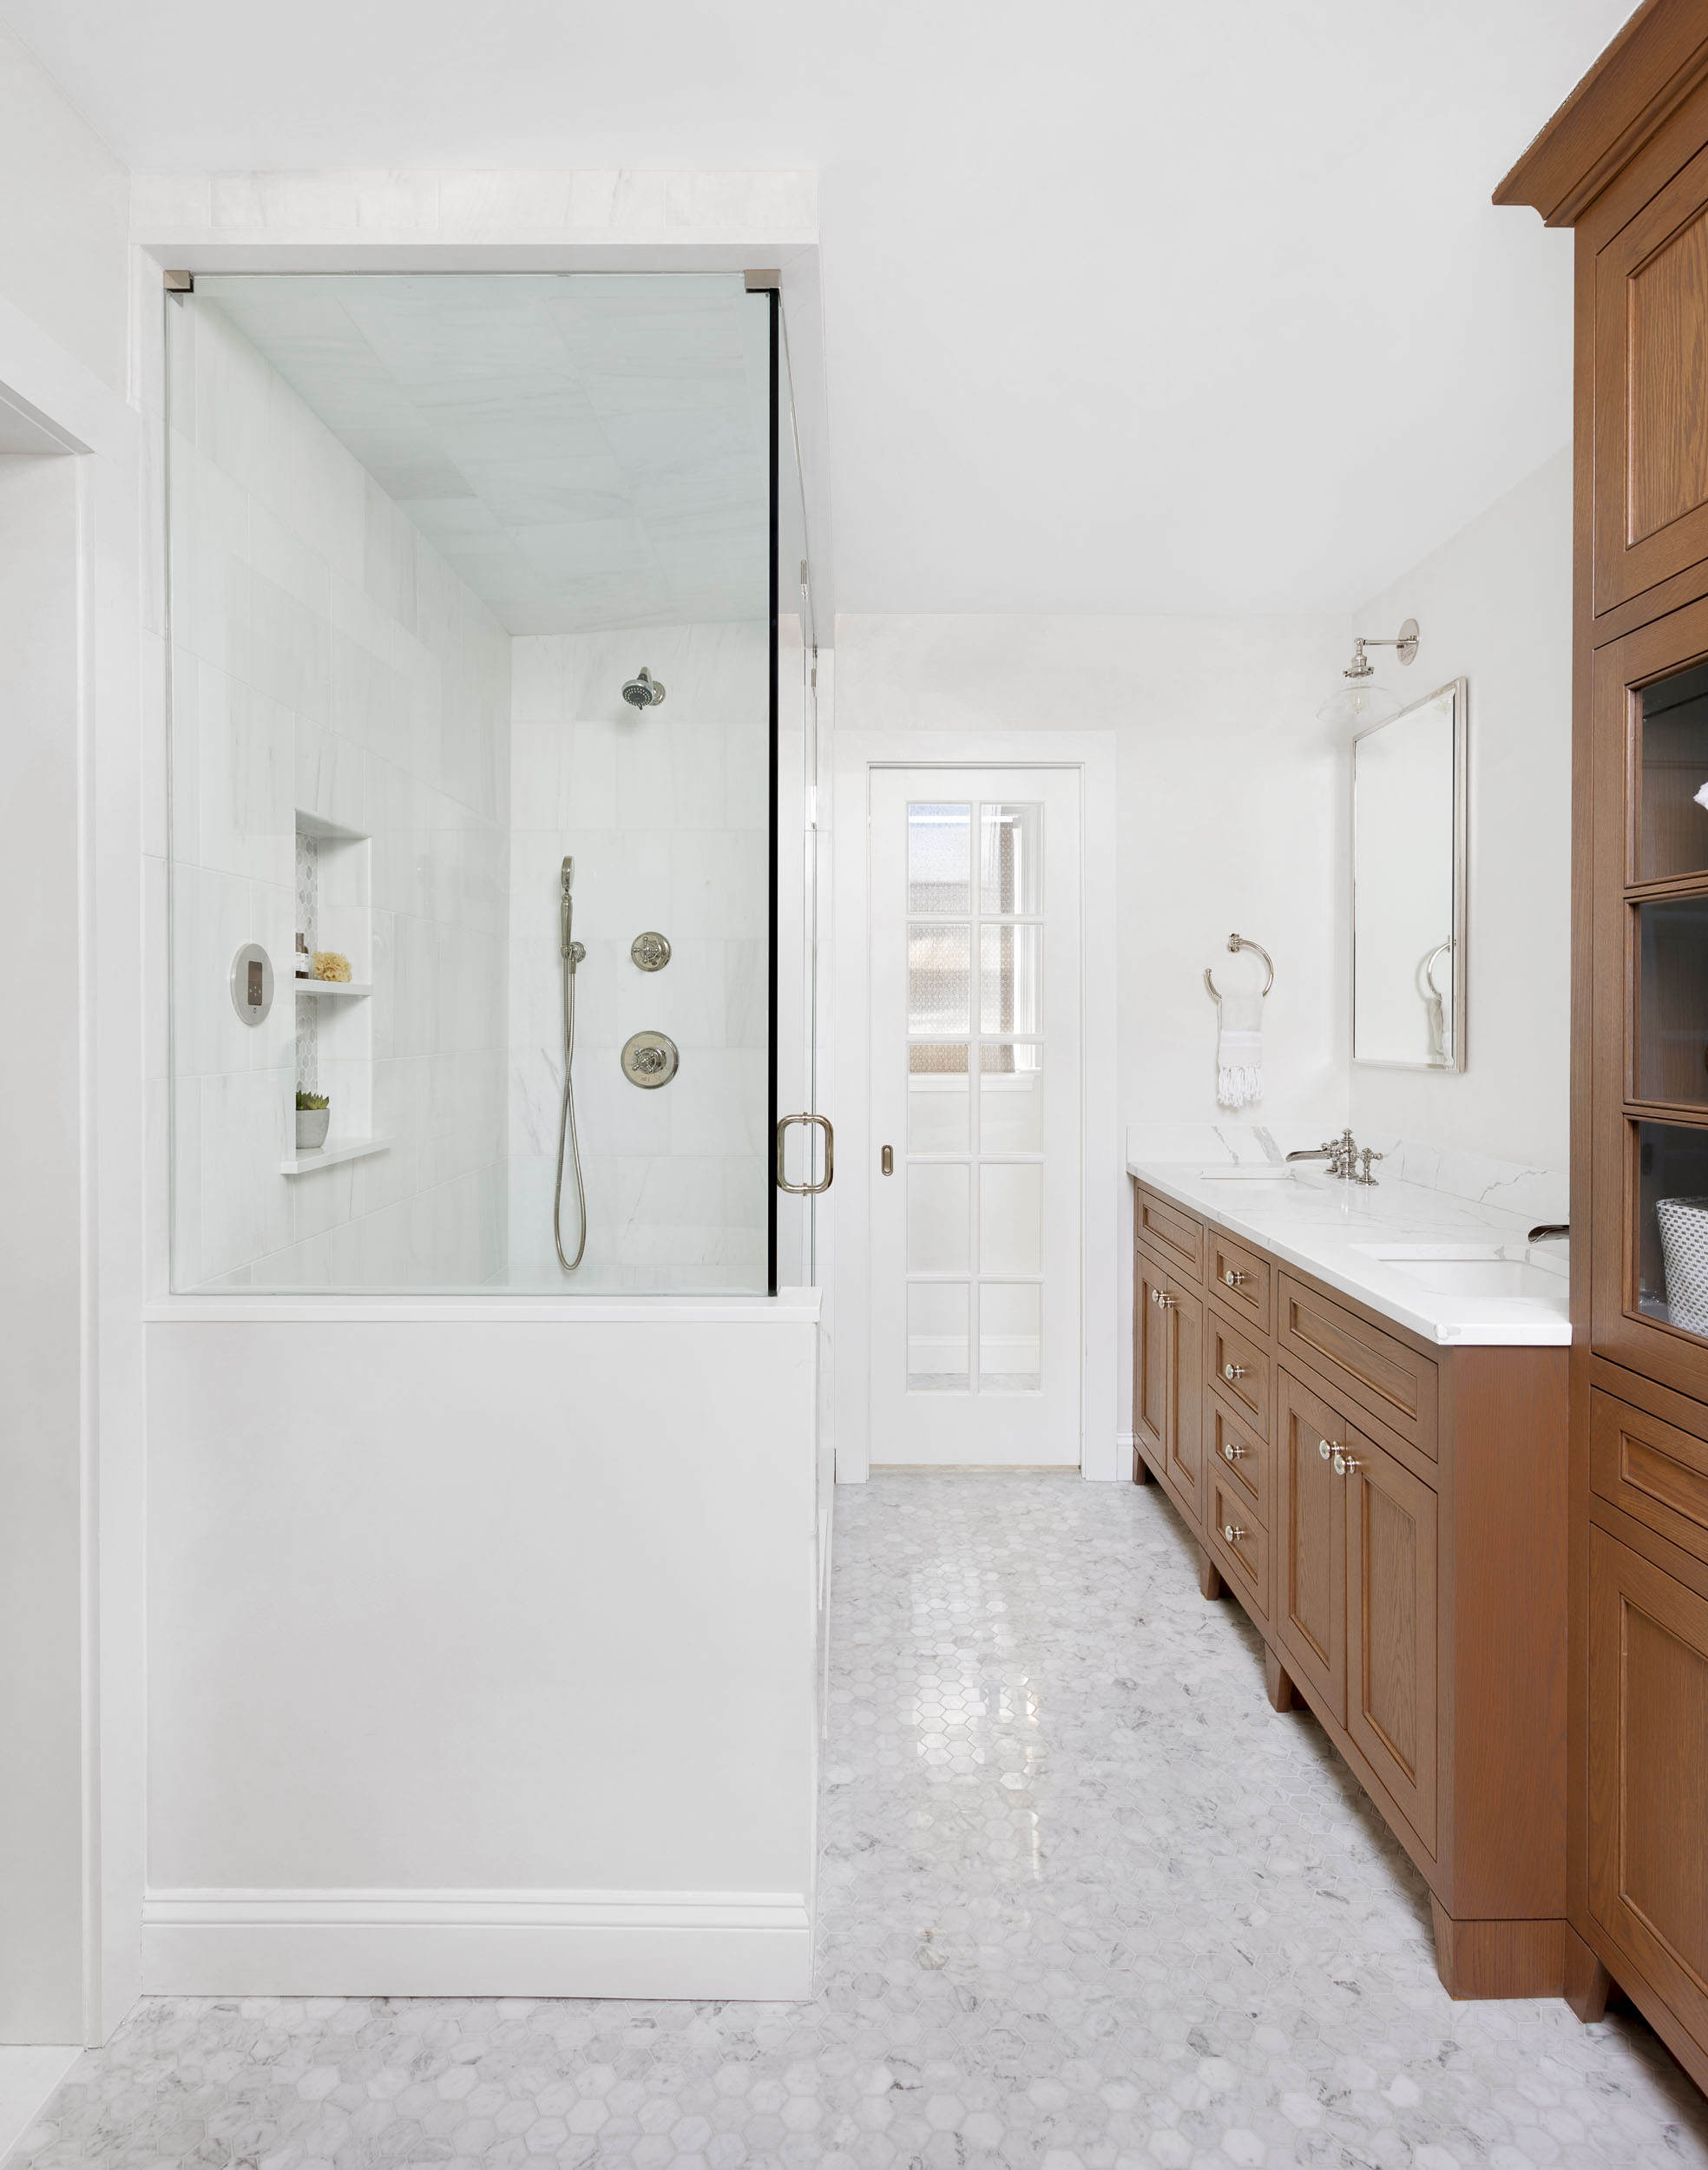 parker and parker design-interior design photography-new canaan ct-master bathroom-steam shower and custom vanity.jpg